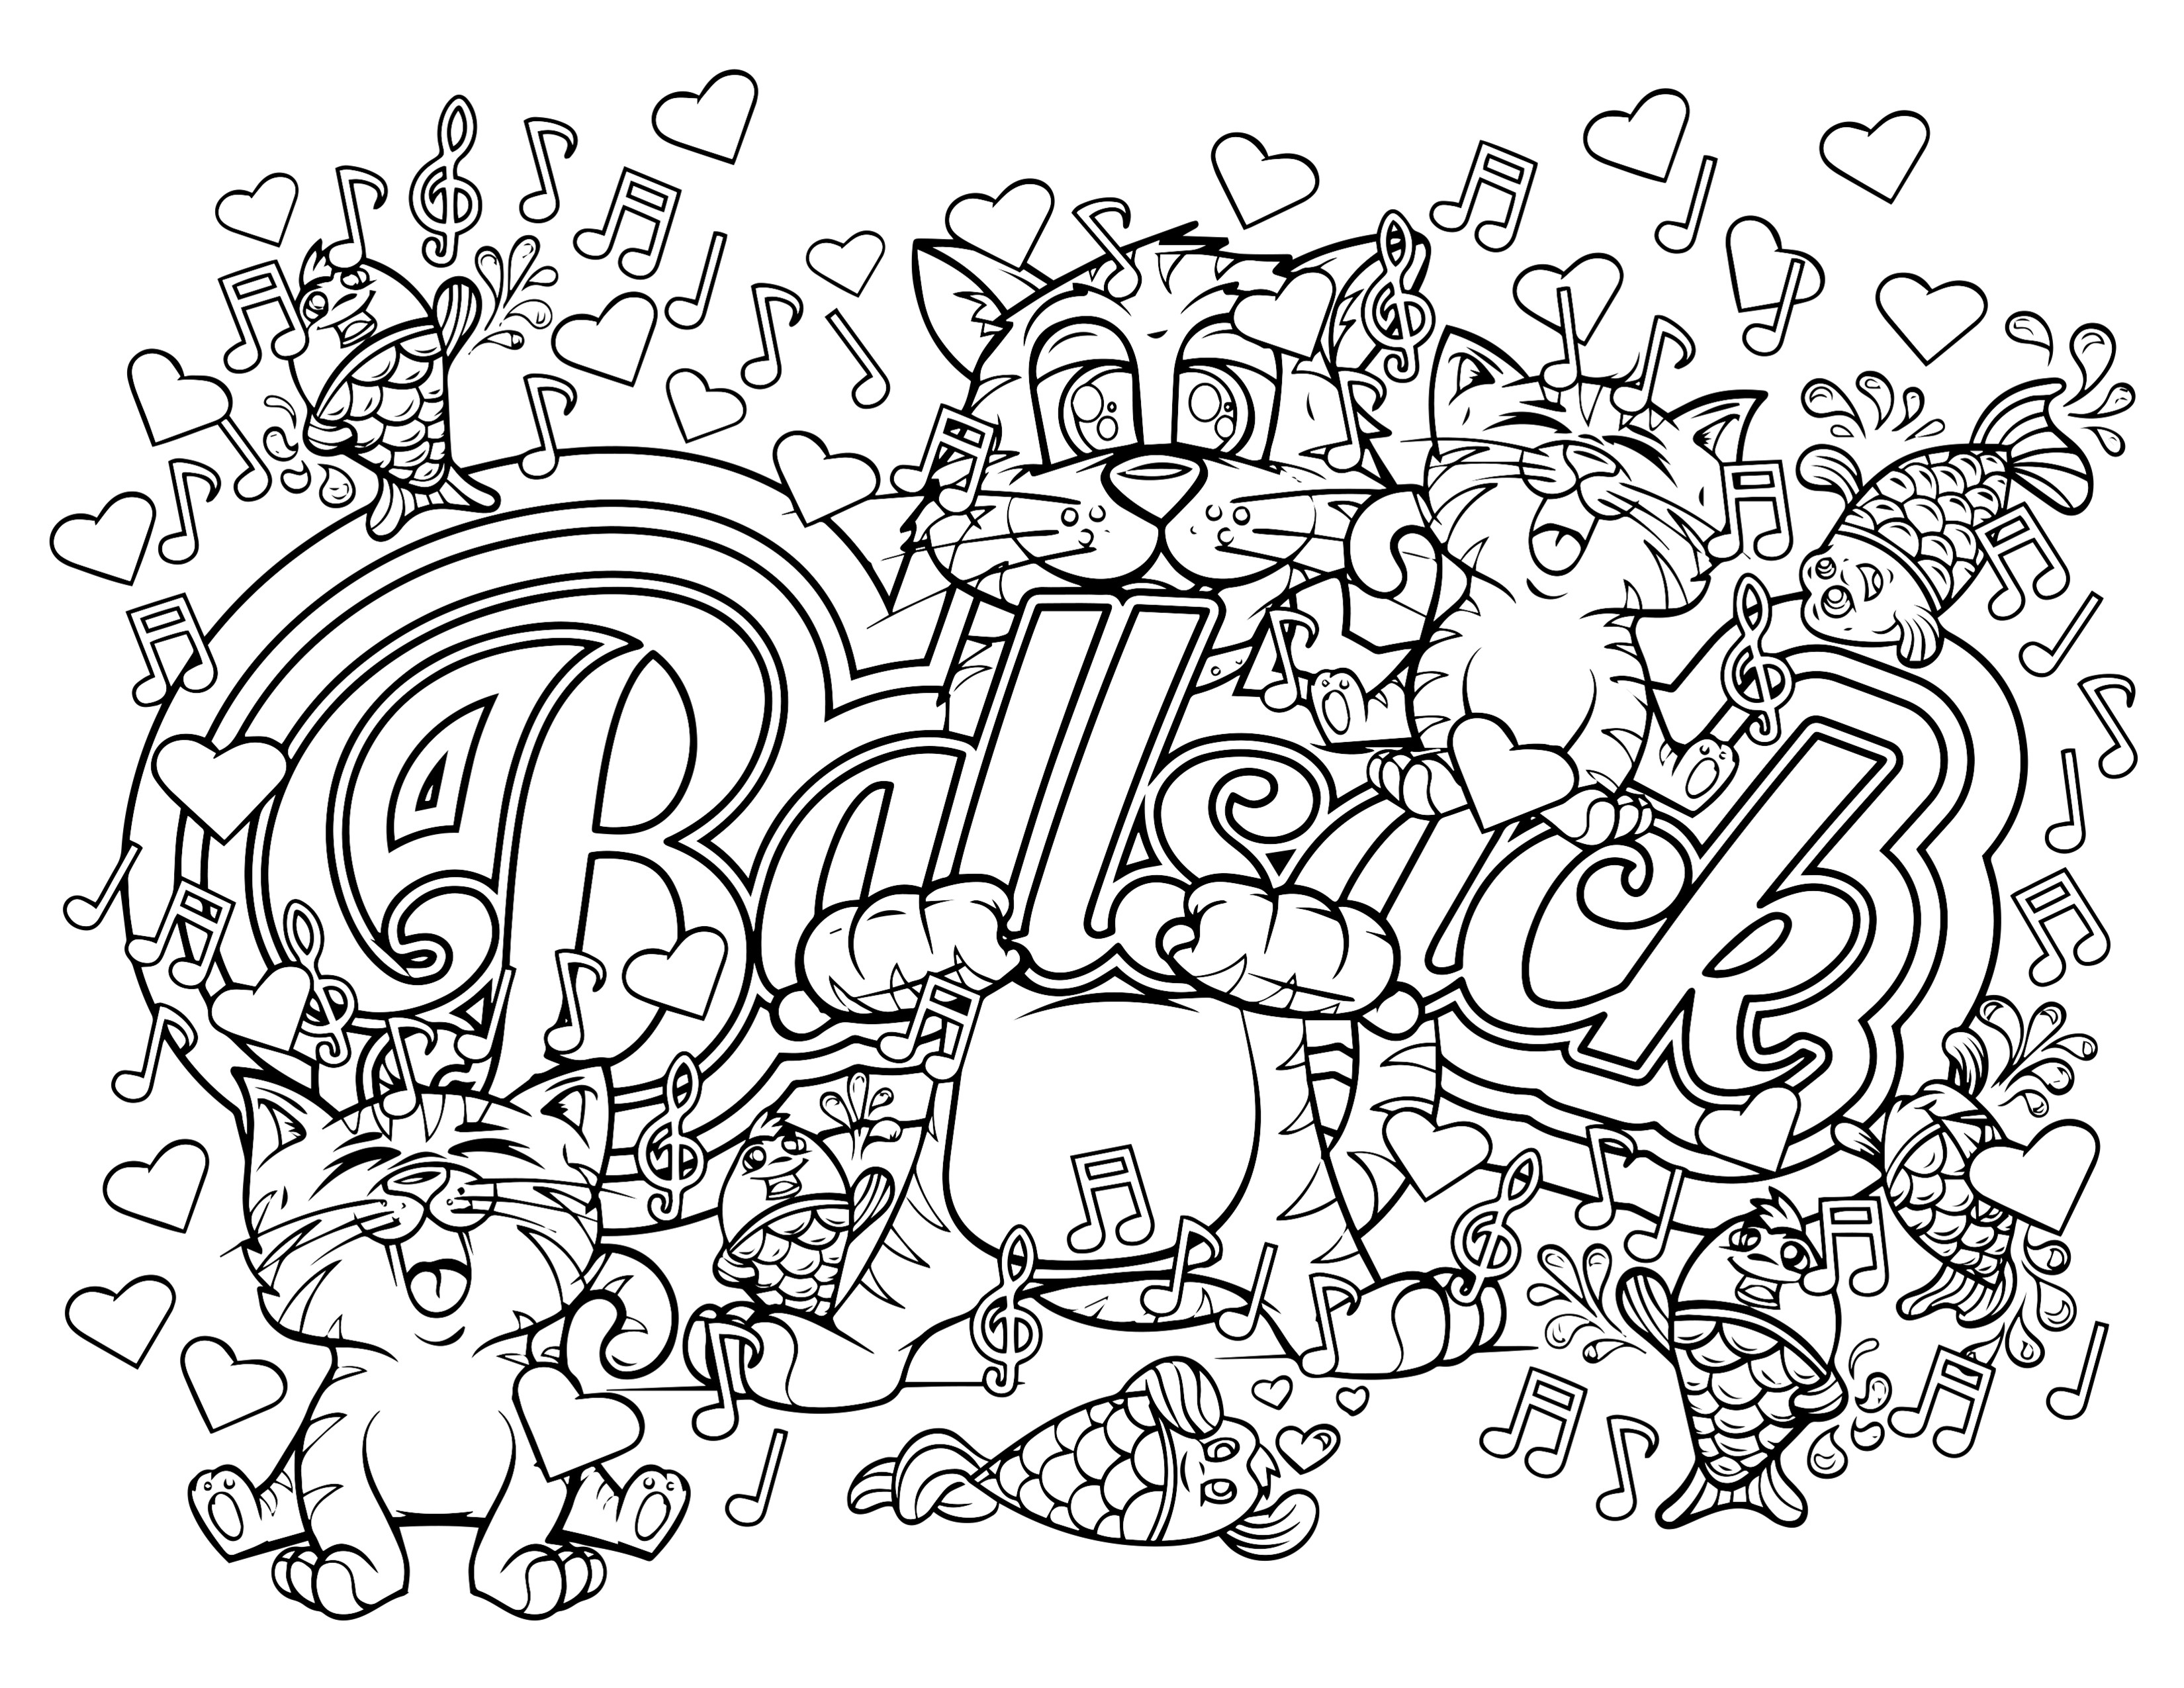 Adult Coloring Books With Swear Words  Brilliant Adult Swear Words Coloring Book Pages with Word